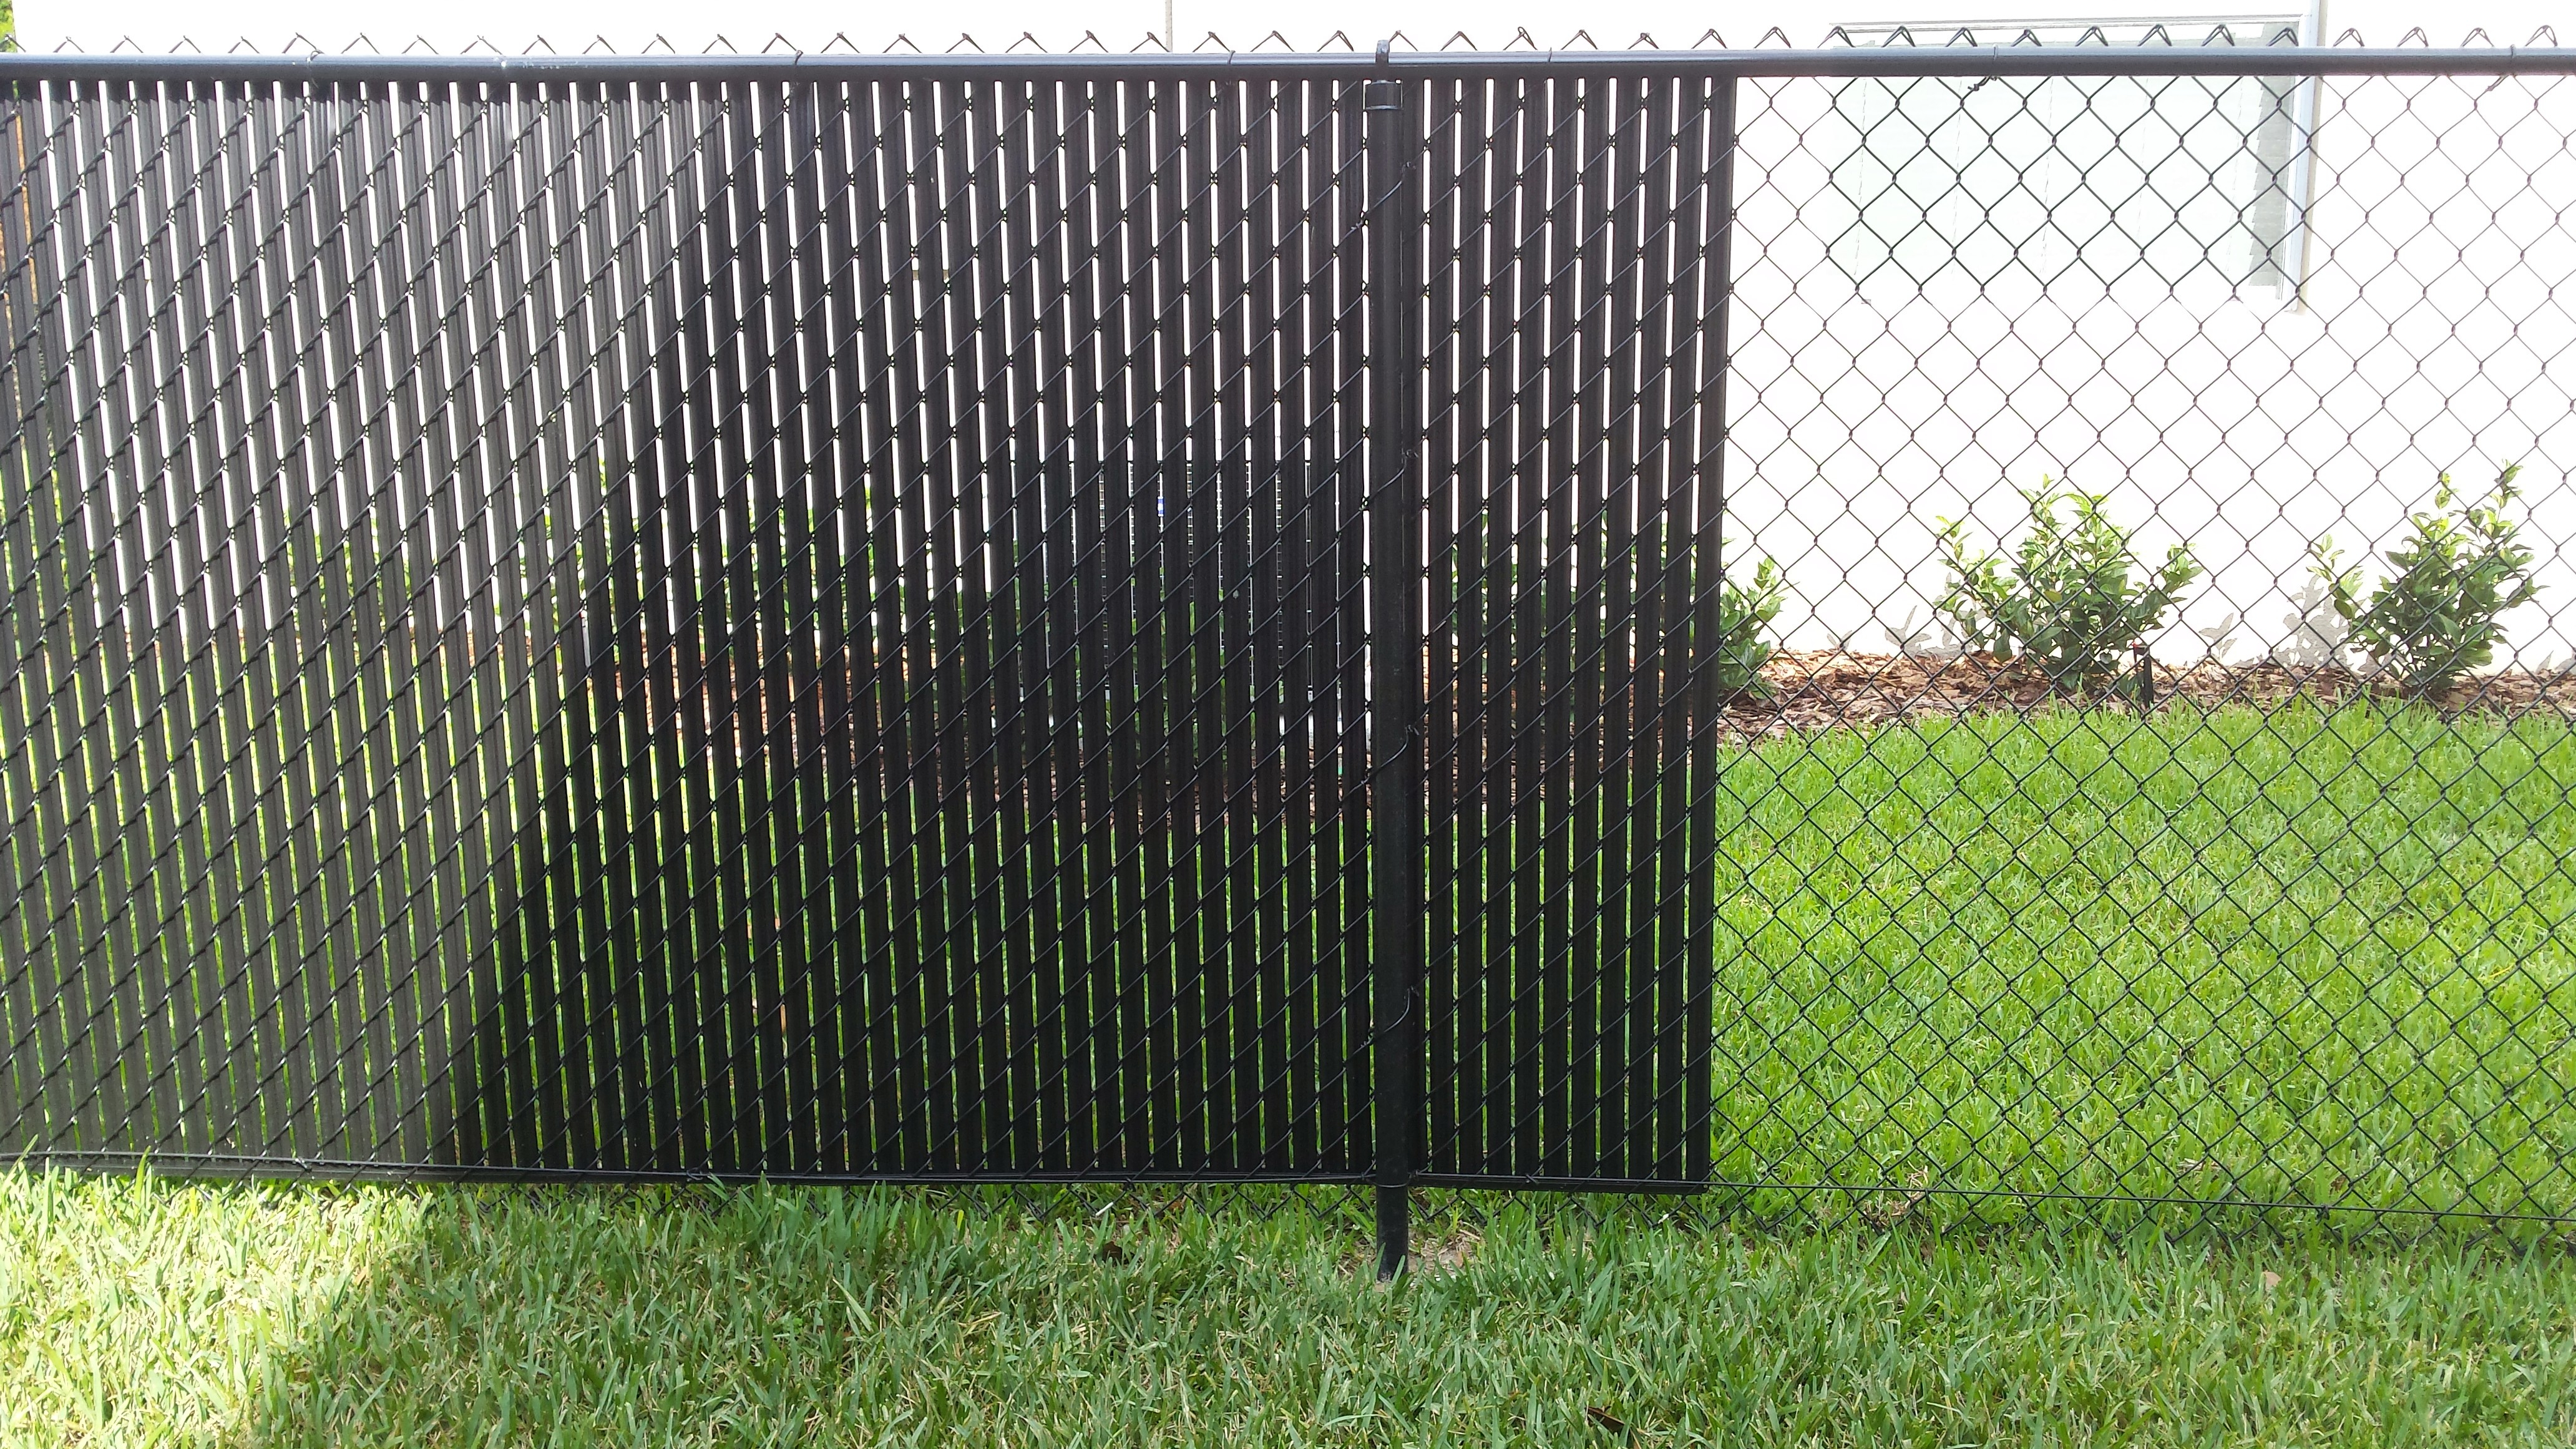 Black Chain Link Fence With Privacy Slats Wwwgalleryhip Slats For intended for size 4128 X 2322